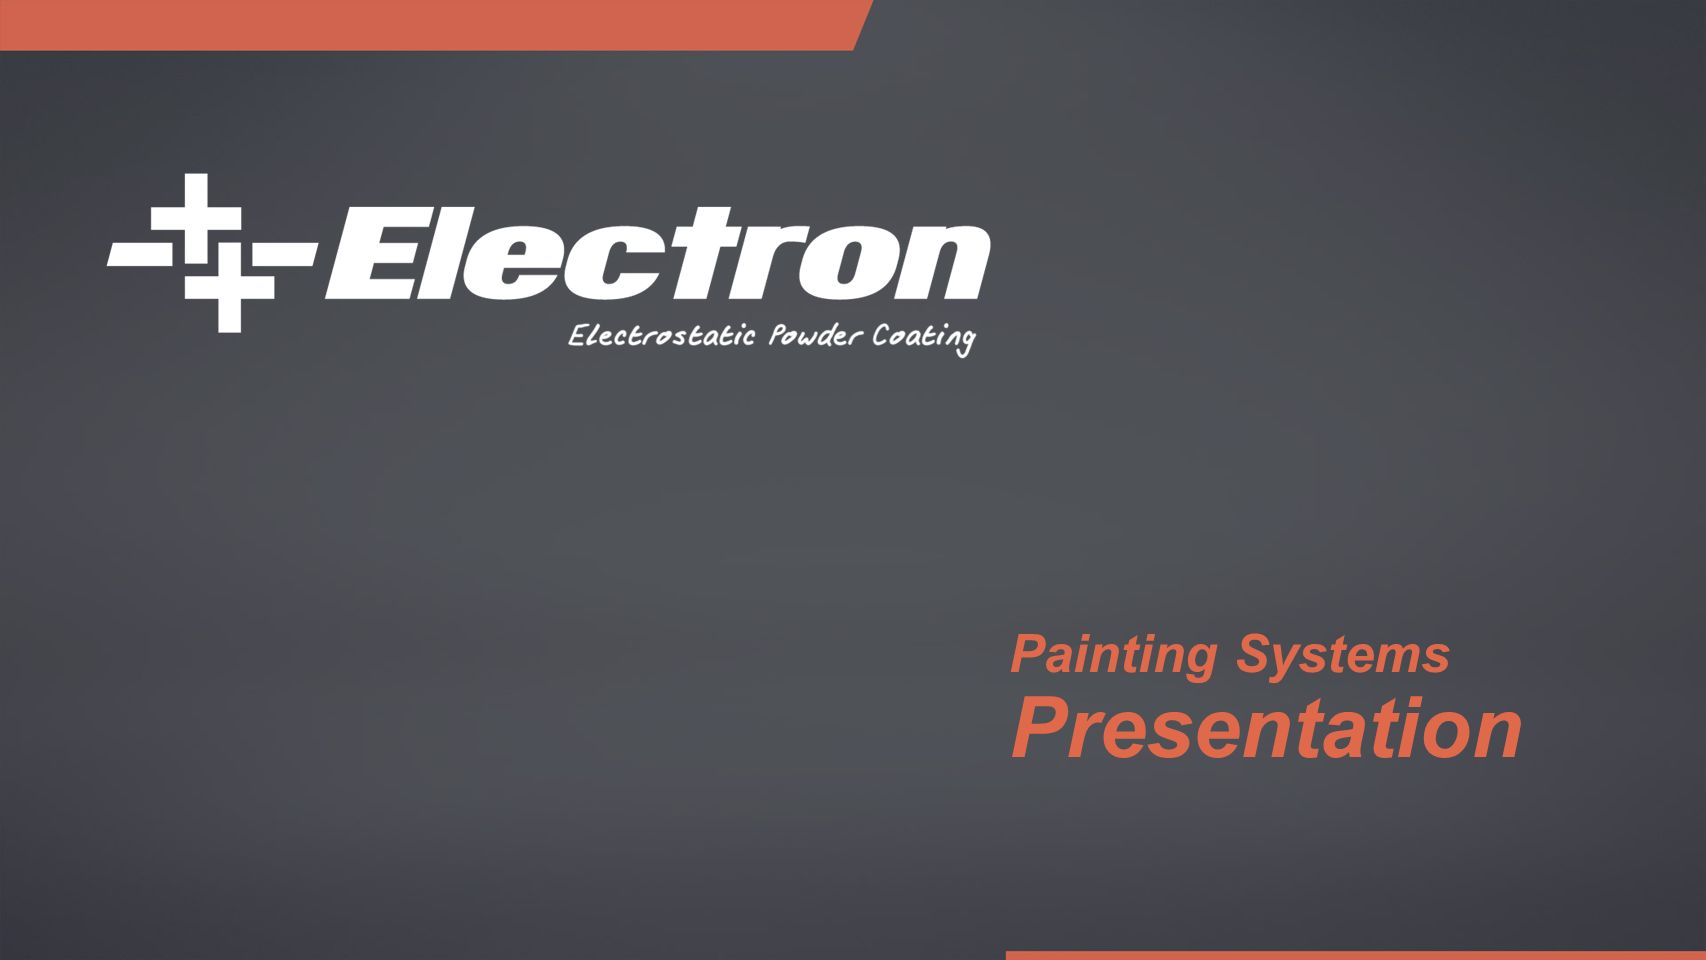 Painting Systems Presentation